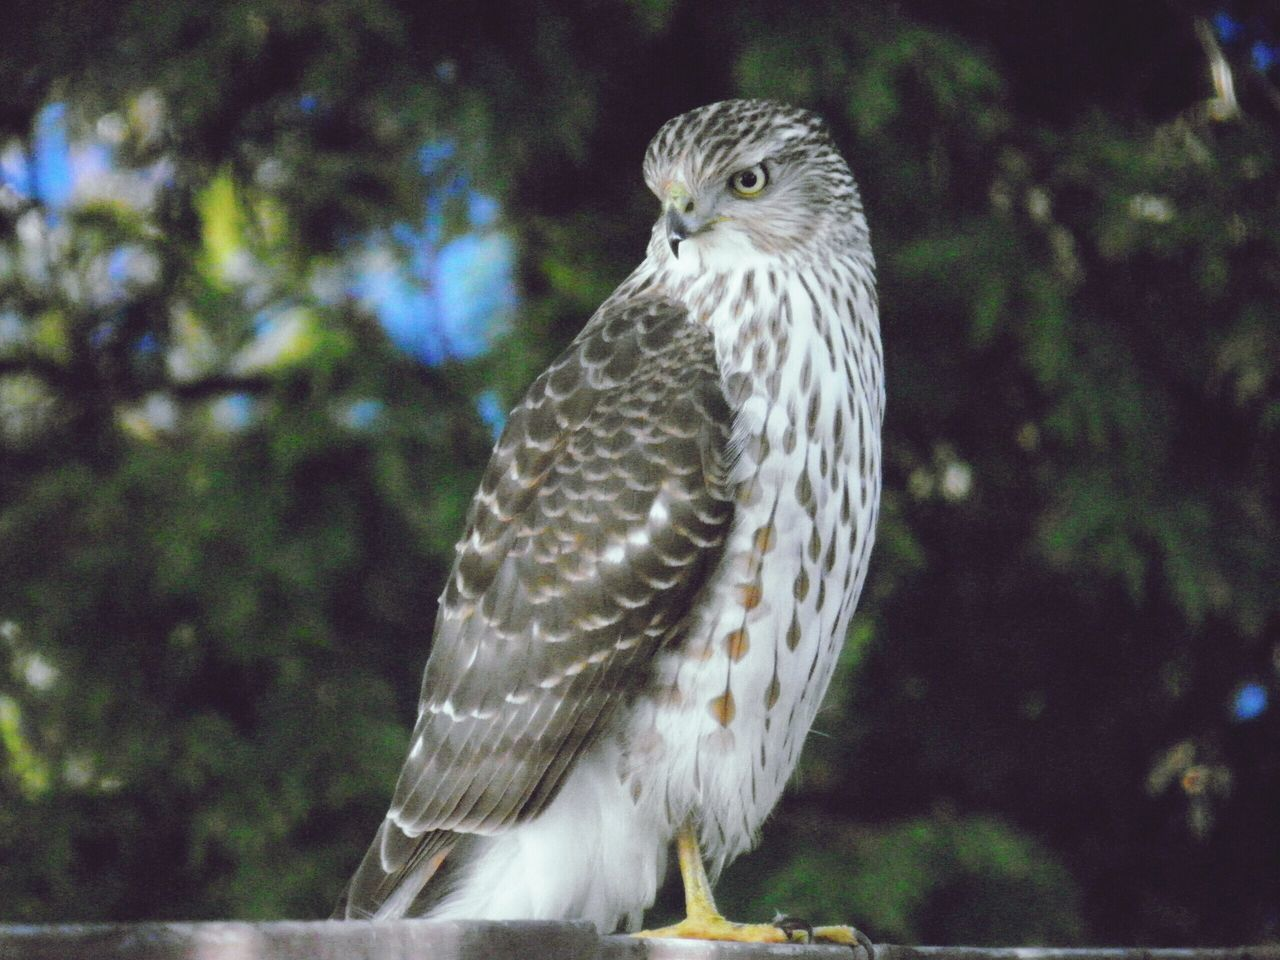 bird, one animal, animal themes, animals in the wild, animal wildlife, bird of prey, focus on foreground, no people, close-up, day, nature, tree, outdoors, perching